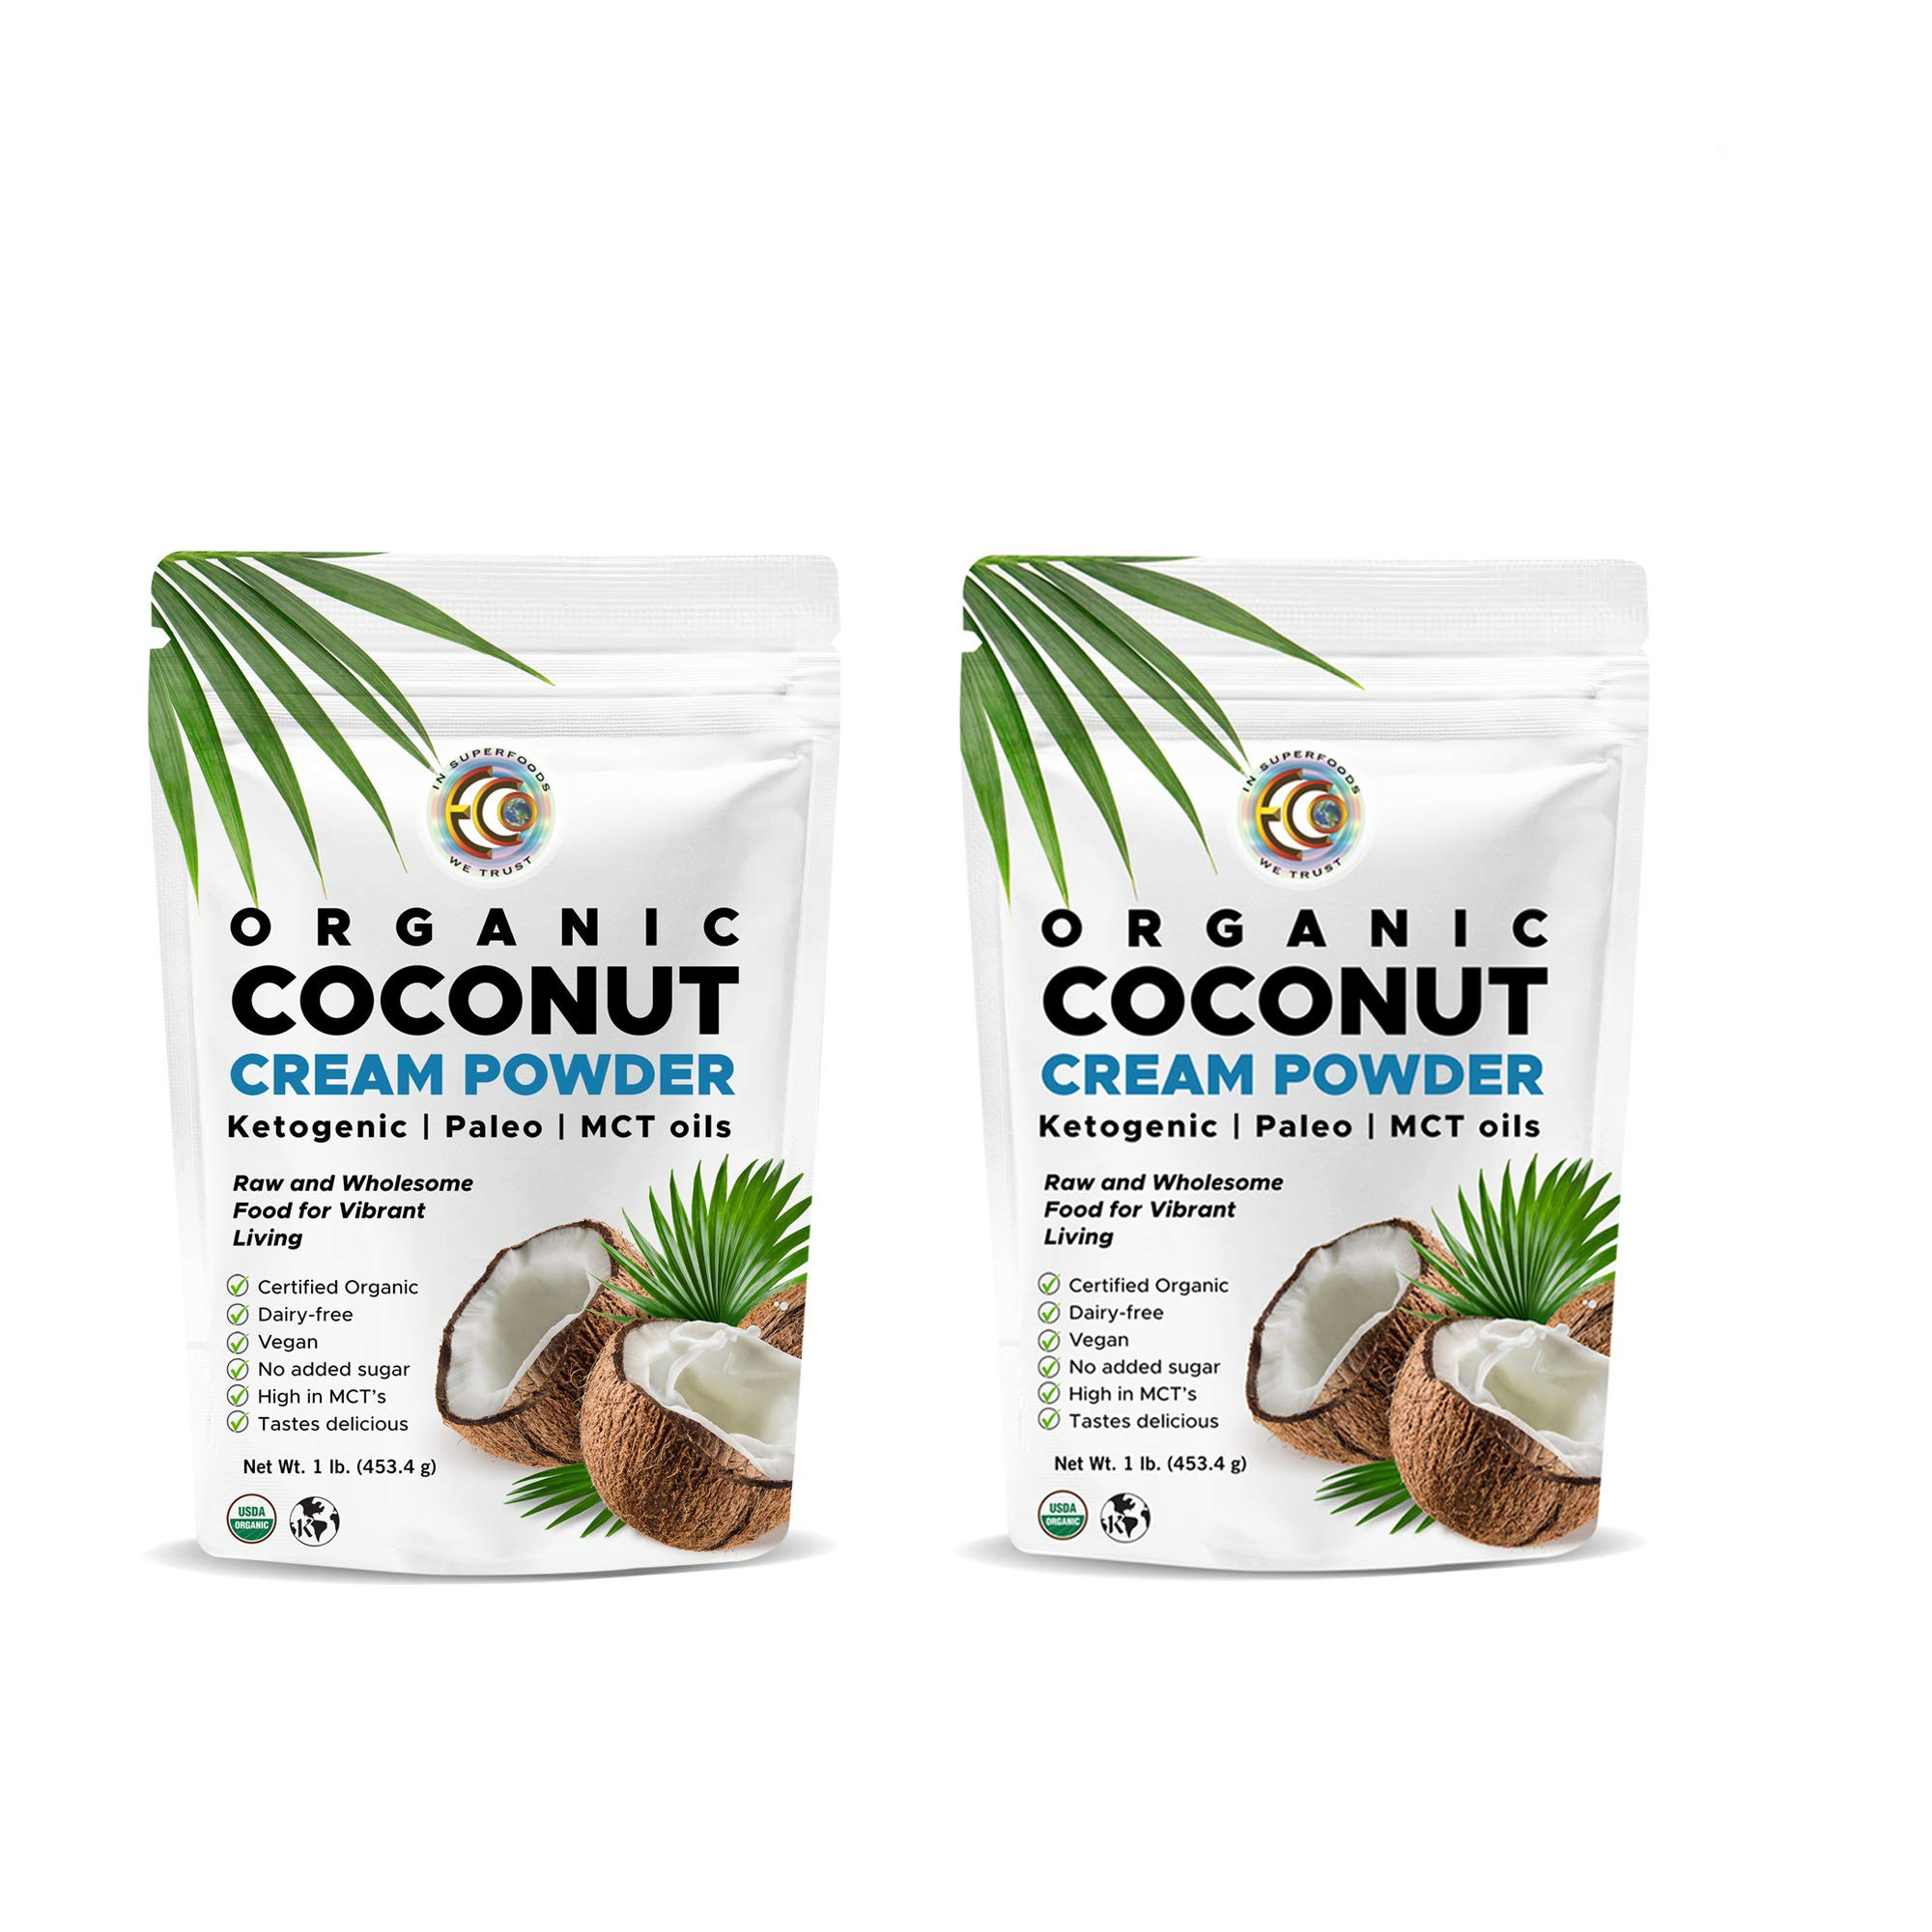 Organic Premium Coconut Milk Powder | Perfect Keto Powdered Coffee Creamer | High in MCT Oil | Vegan | No Added Sugar | Dehydrated | Vegan | Gluten and Dairy Free - (2 Pack) by Earth Circle Organics